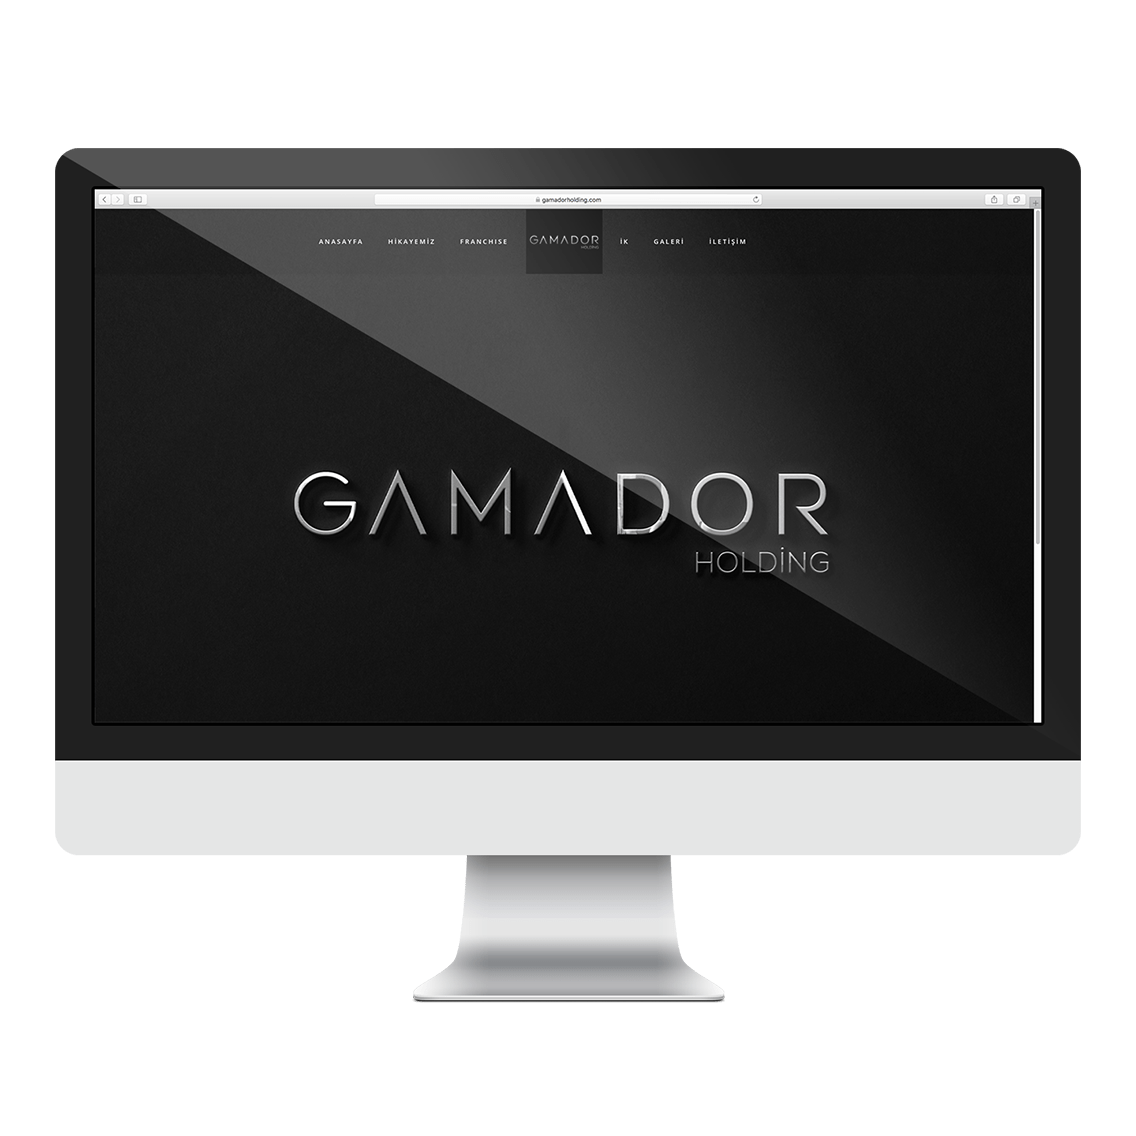 Gamador Holding